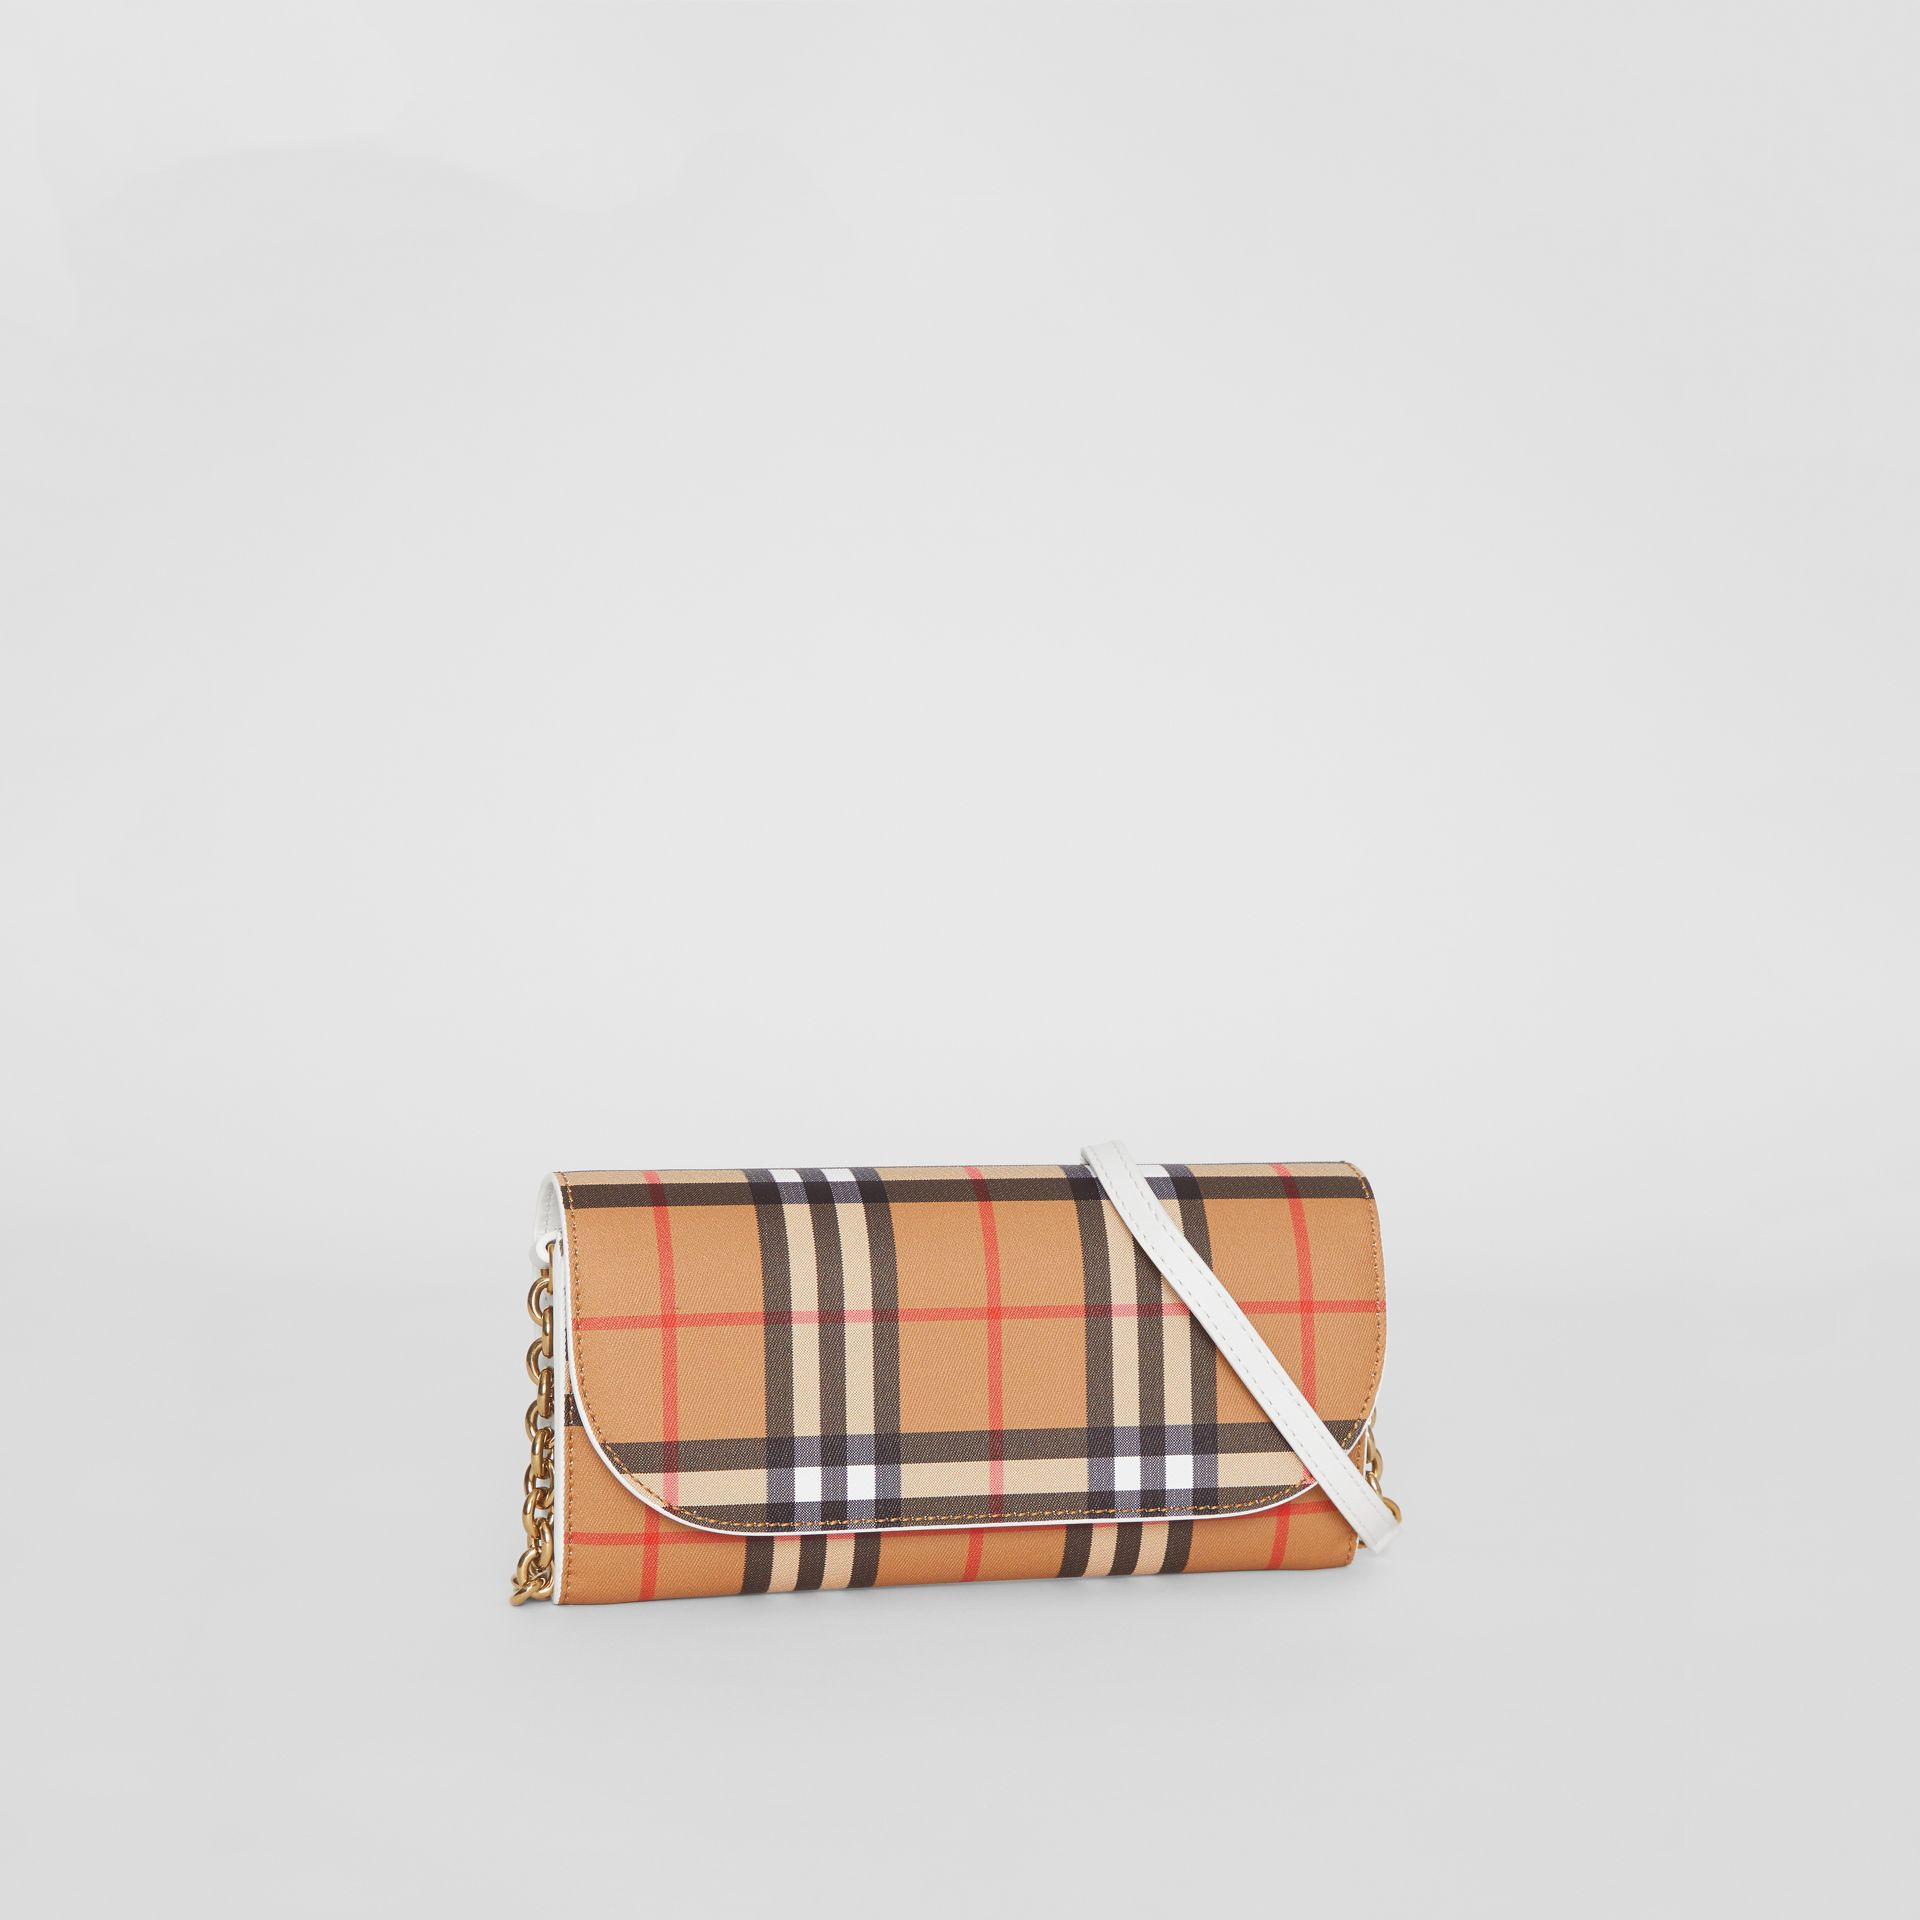 Vintage Check and Leather Wallet with Chain in Chalk White - Women | Burberry - gallery image 6